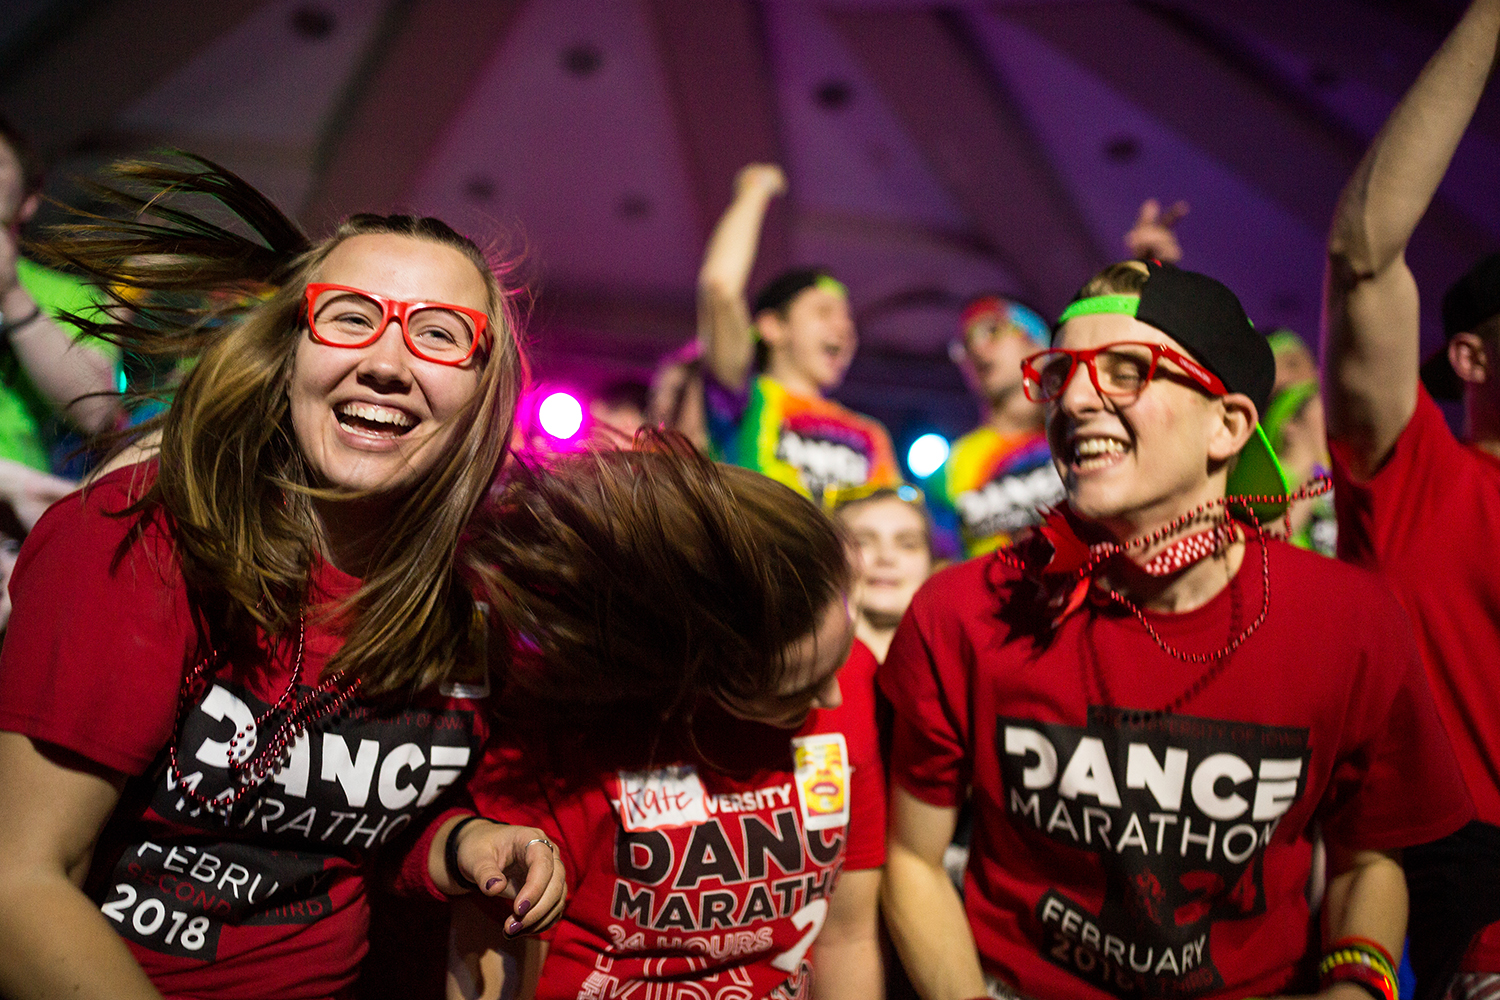 Dance marathon participants dance on stage during the ninth hour of the University of Iowa's 24th Annual Dance Marathon, on Saturday, Feb. 3, 2017.